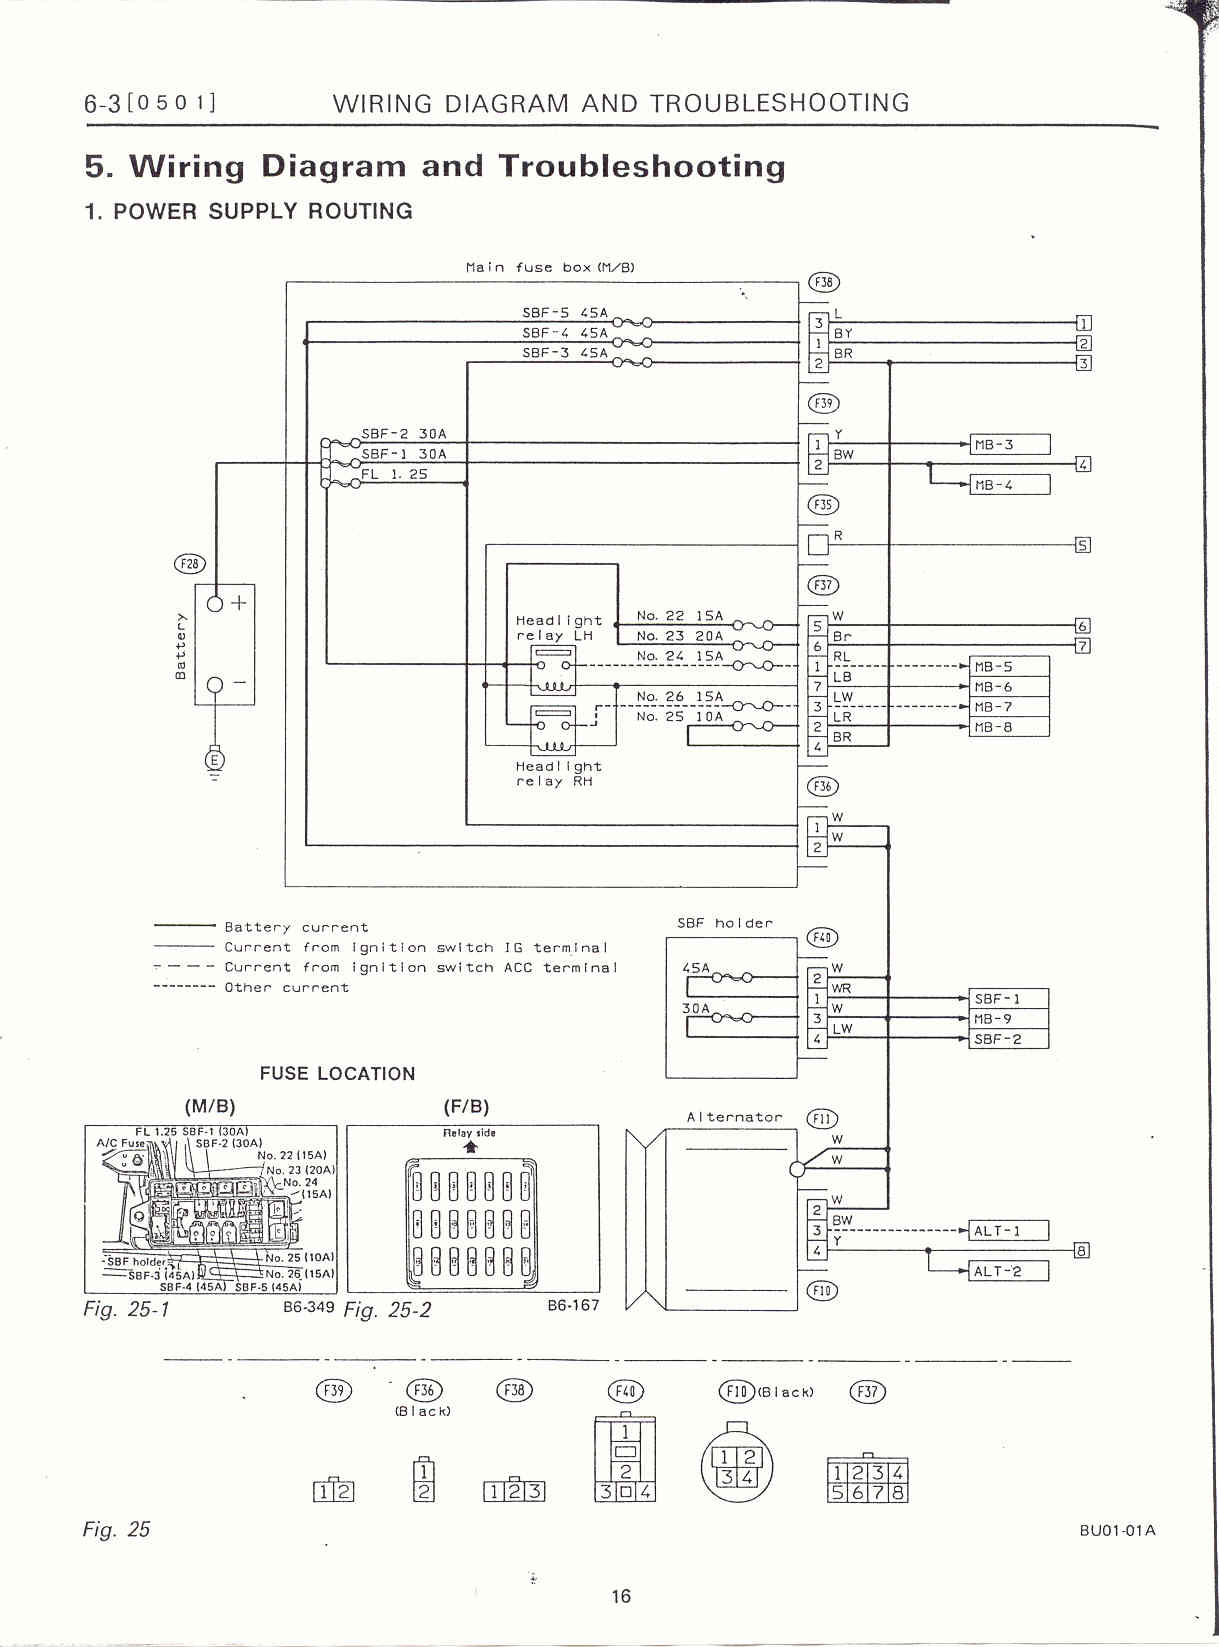 Subaru Impreza Ignition Wiring Diagram Guide And Troubleshooting Radio Todays Rh 17 12 1813weddingbarn Com 2005 Harness Route